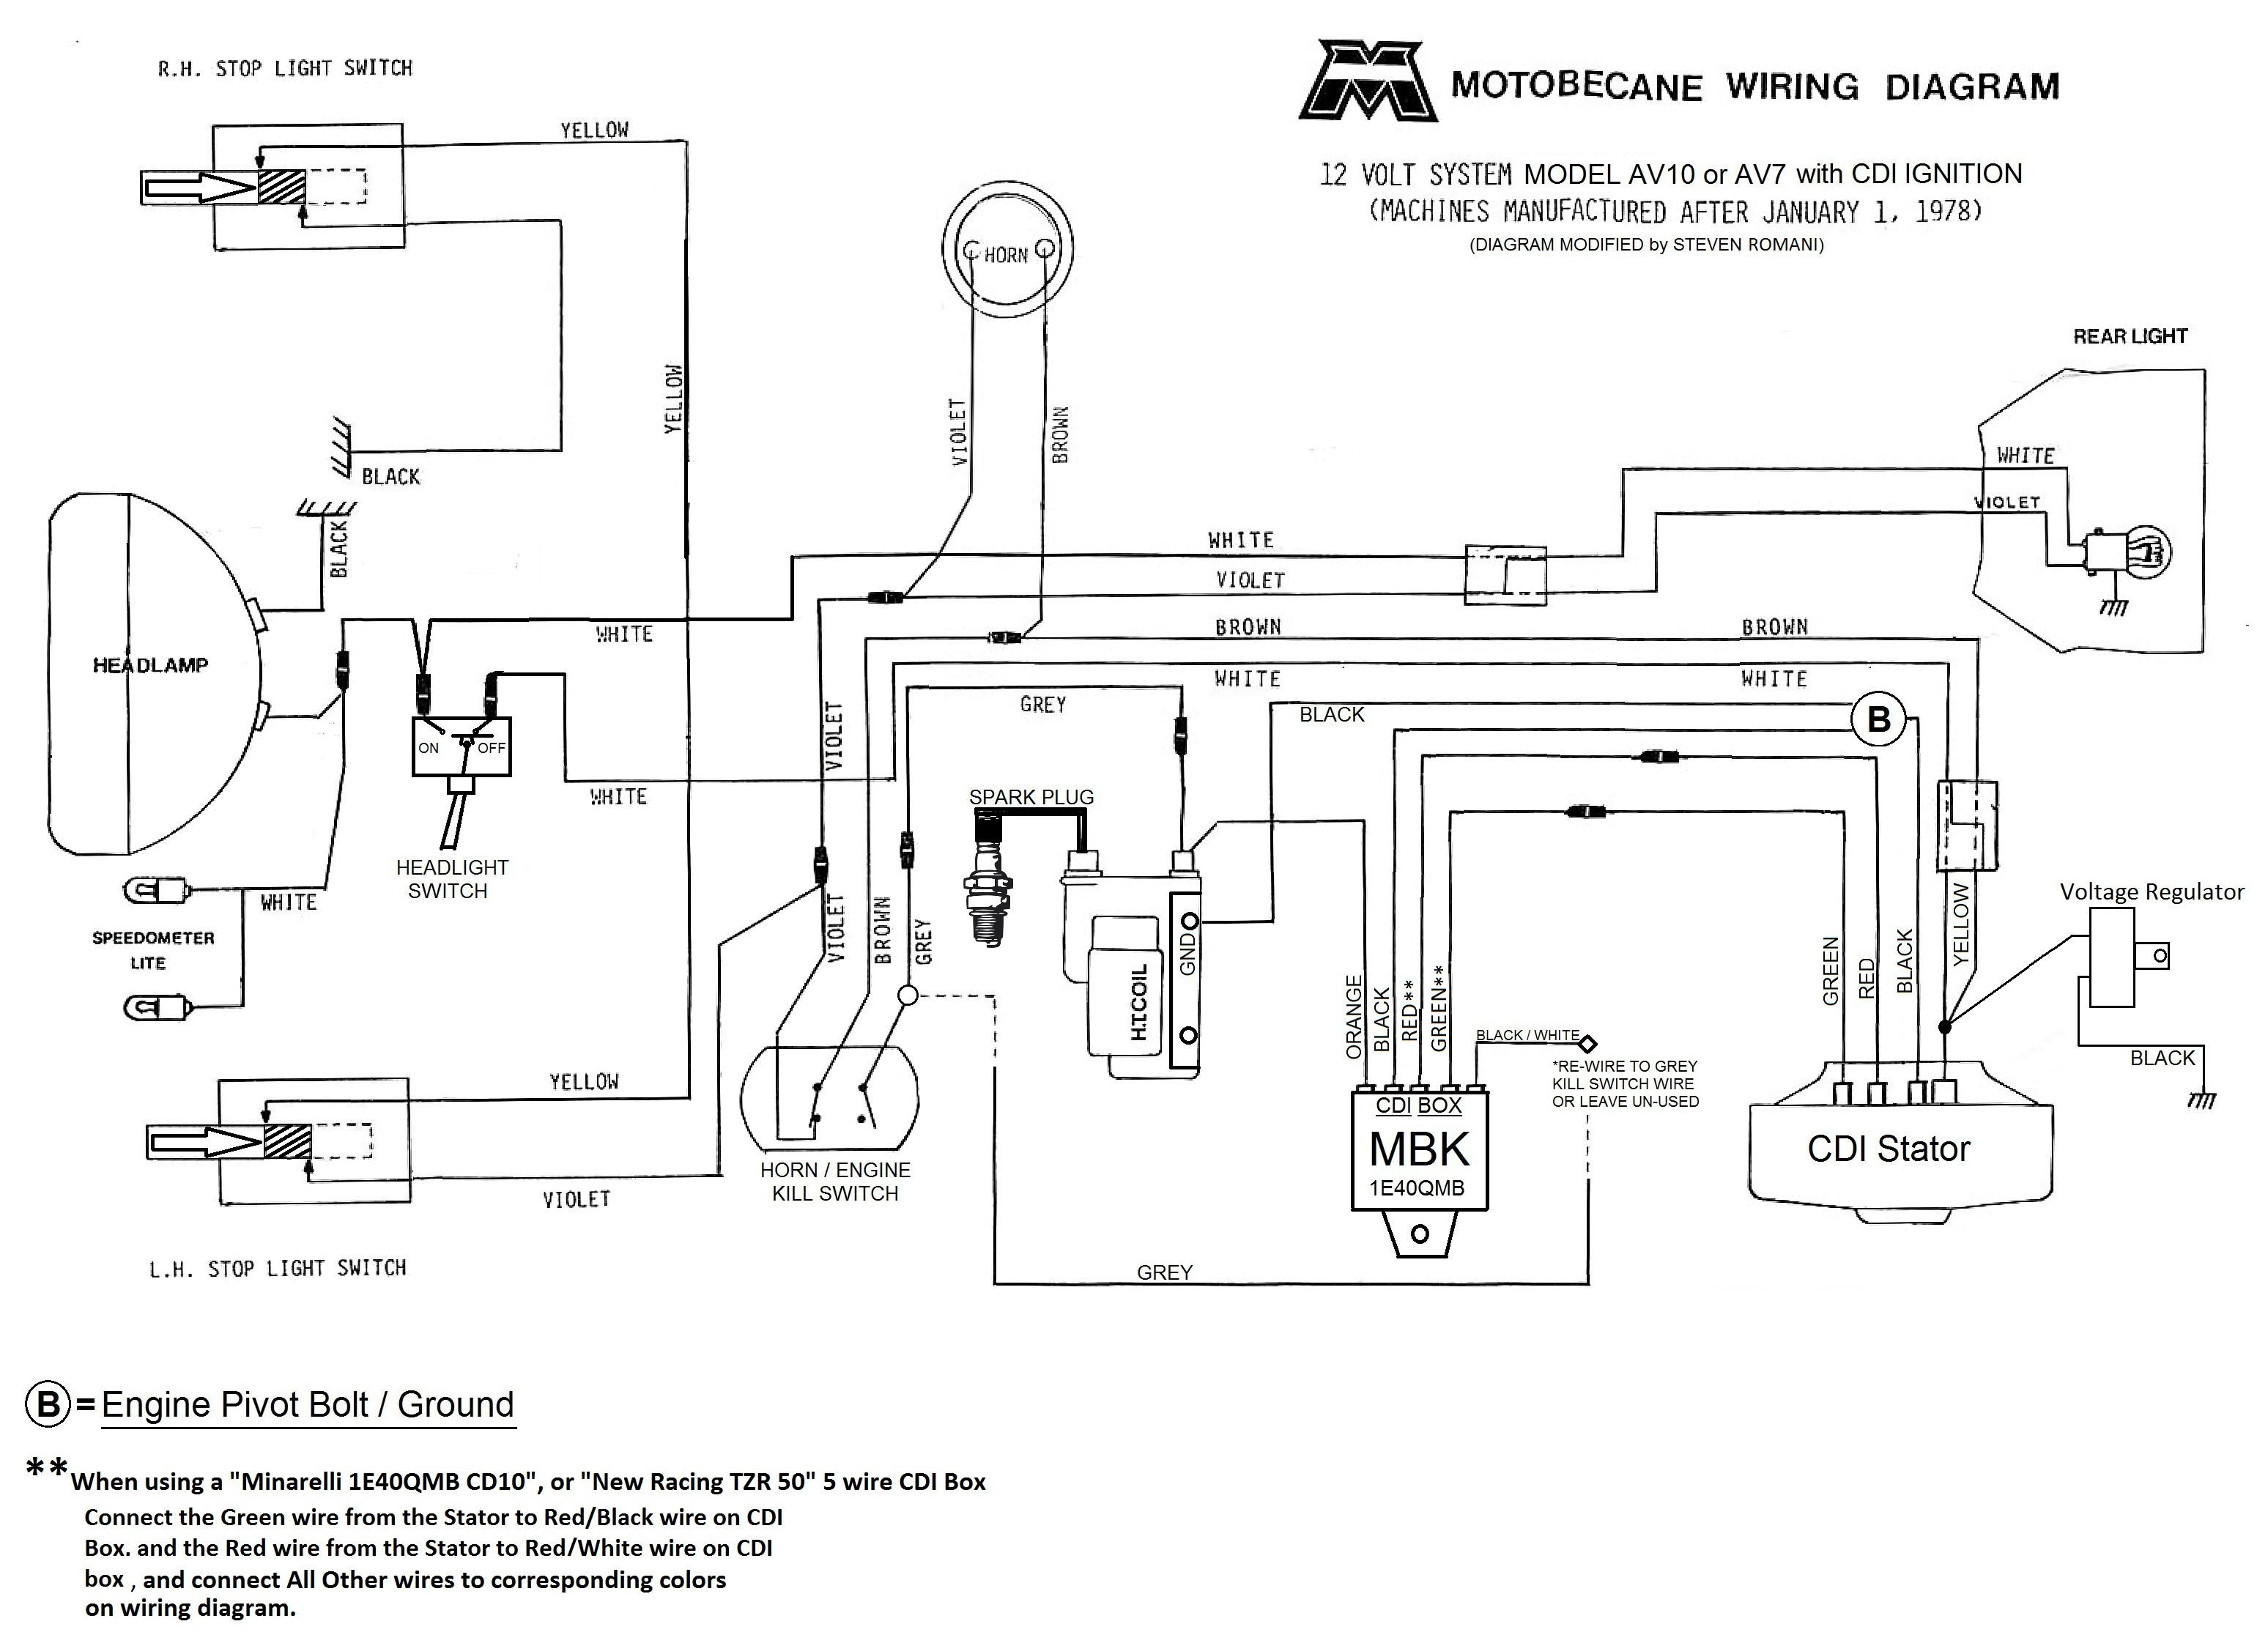 Motobecane Wiring Diagrams Moped Wiki Farmall B Diagram 12v Cdi Av10 And Av7